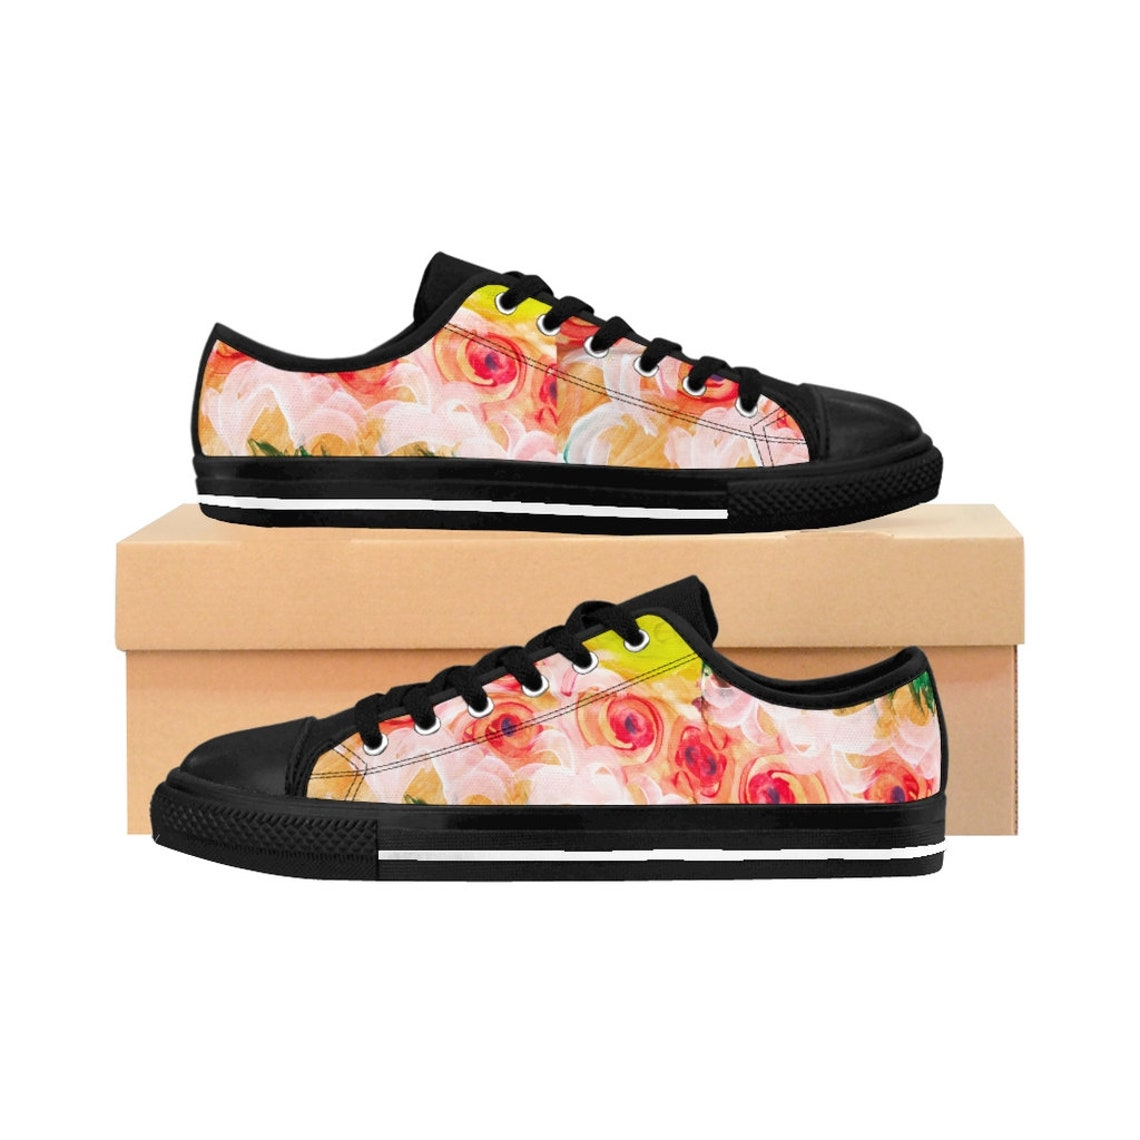 Flower Power Women's Sneakers